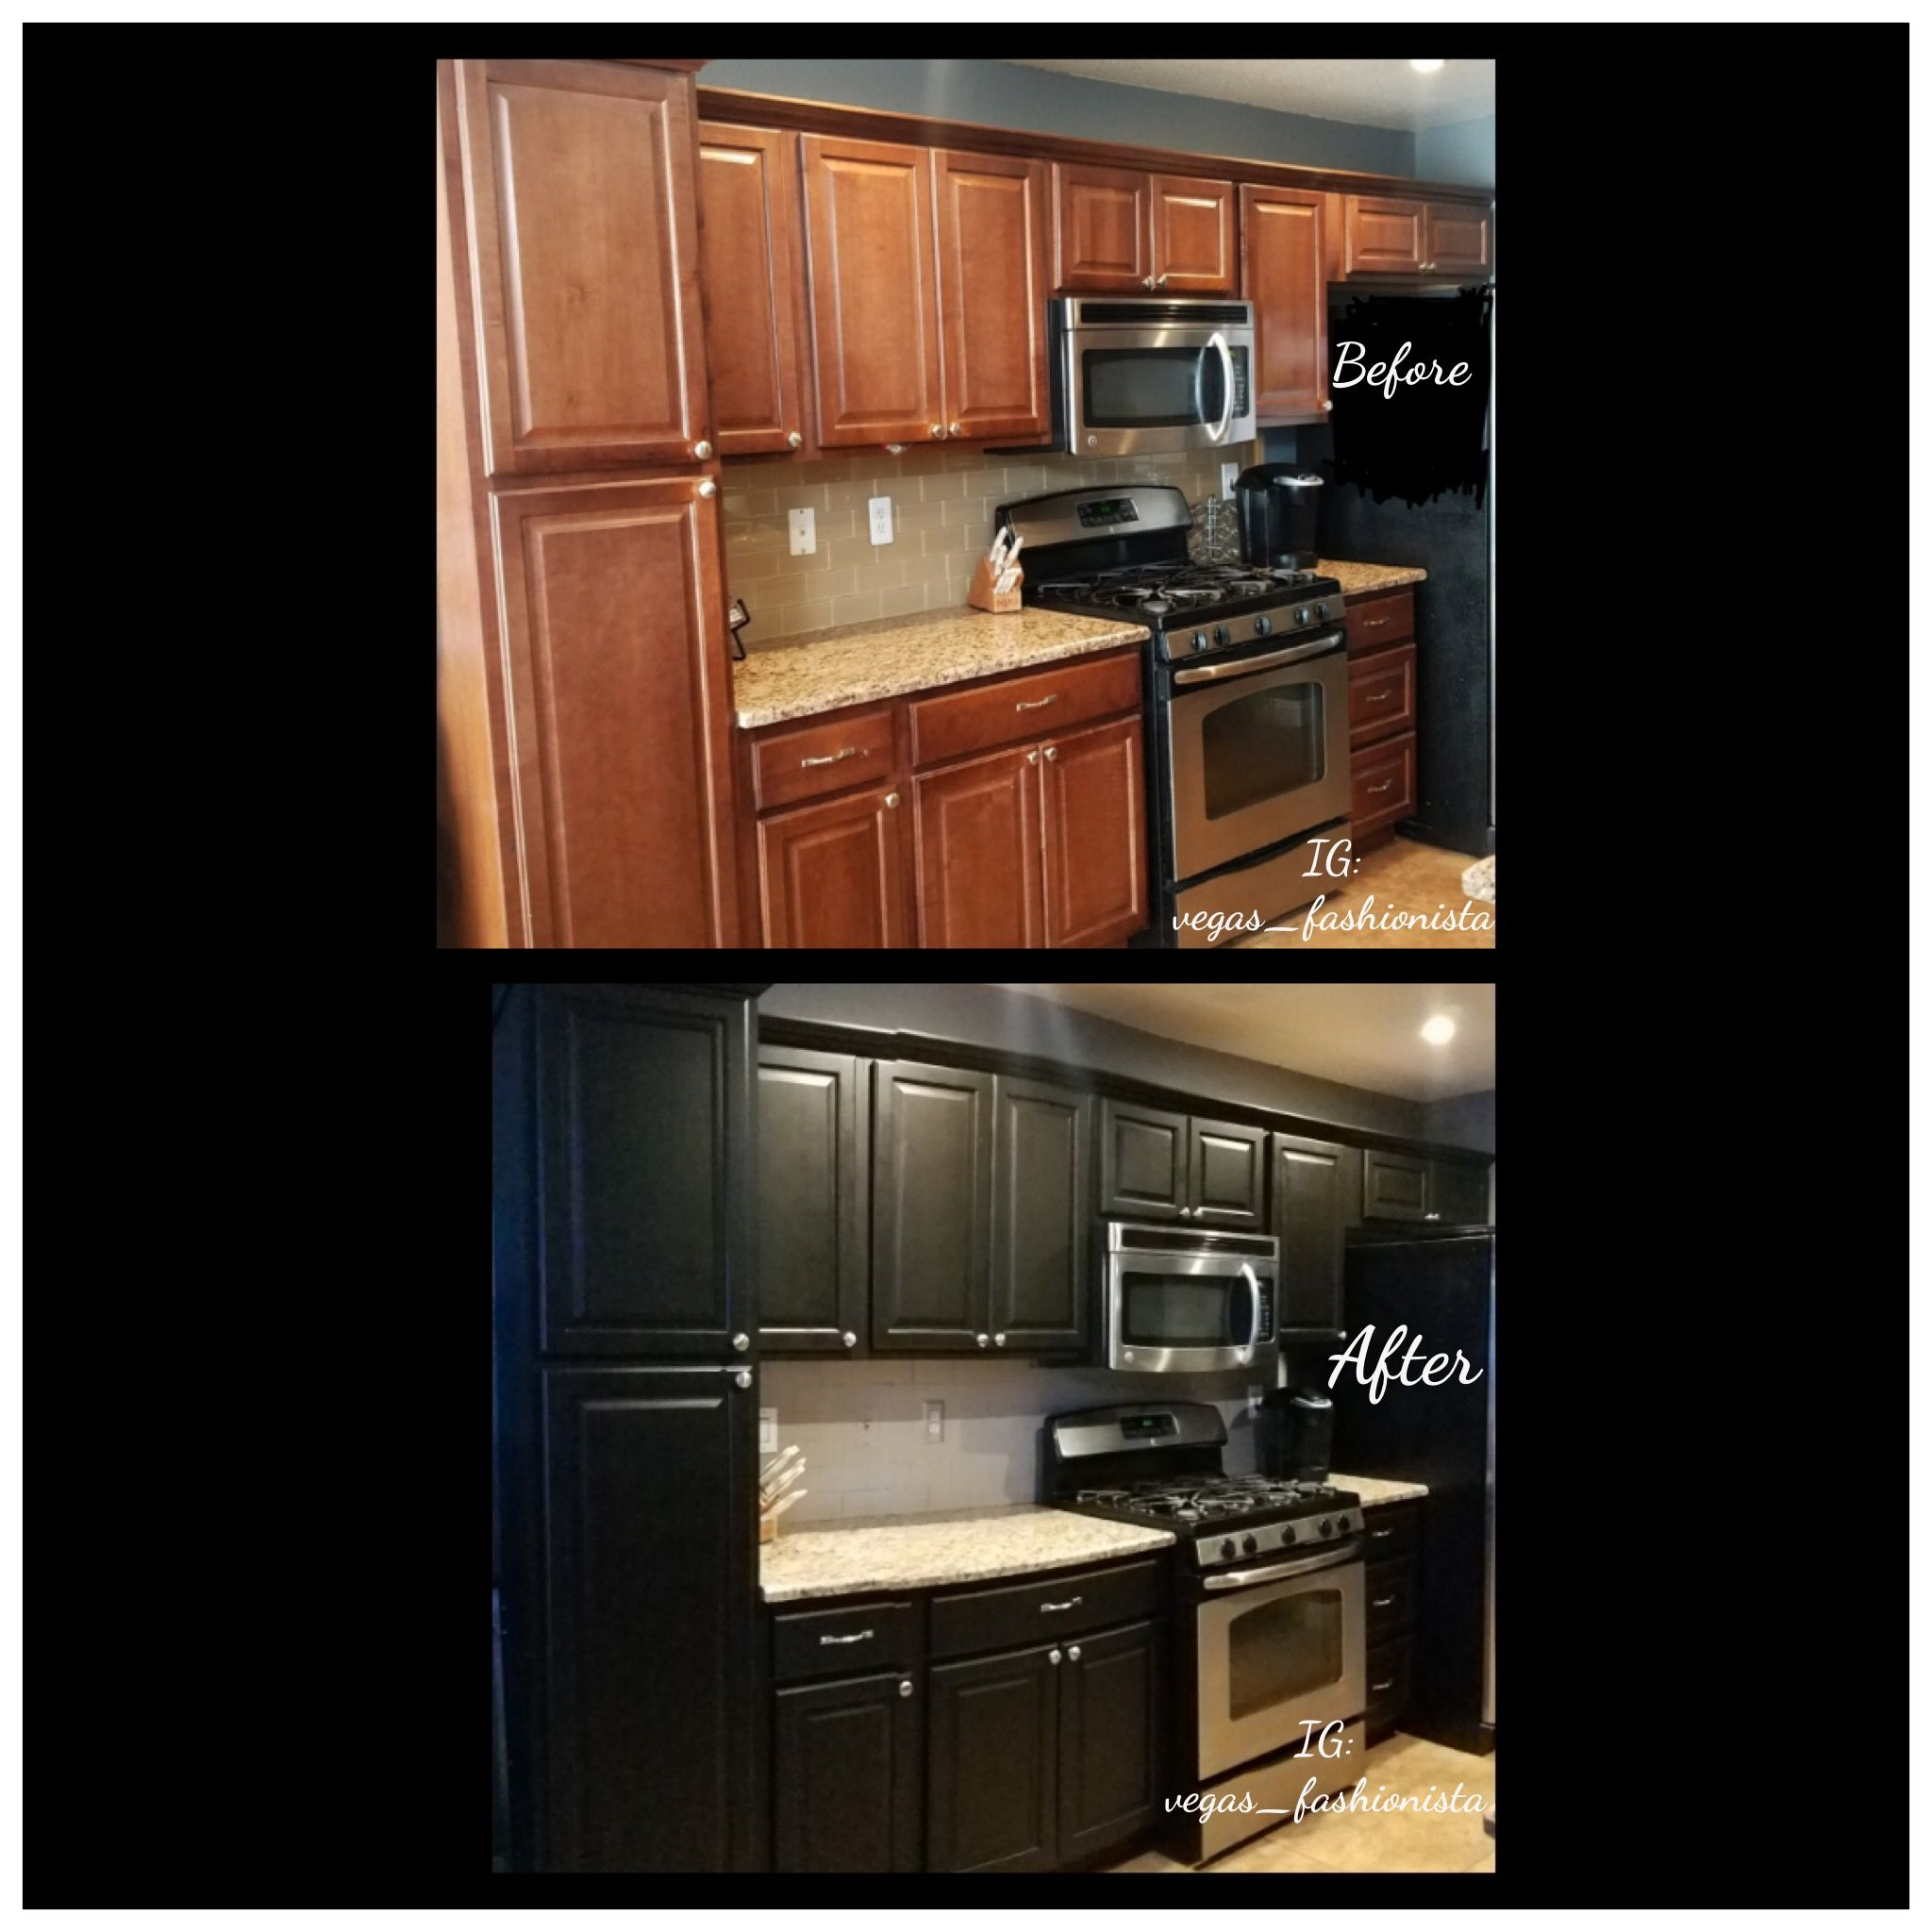 Diy Kitchen Cabinets After Espresso In Satin Finish W Polyurethane Did 4 Thin Coats With A 24hr Drying Per Diy Kitchen Cabinets Kitchen Cabinets Diy Kitchen